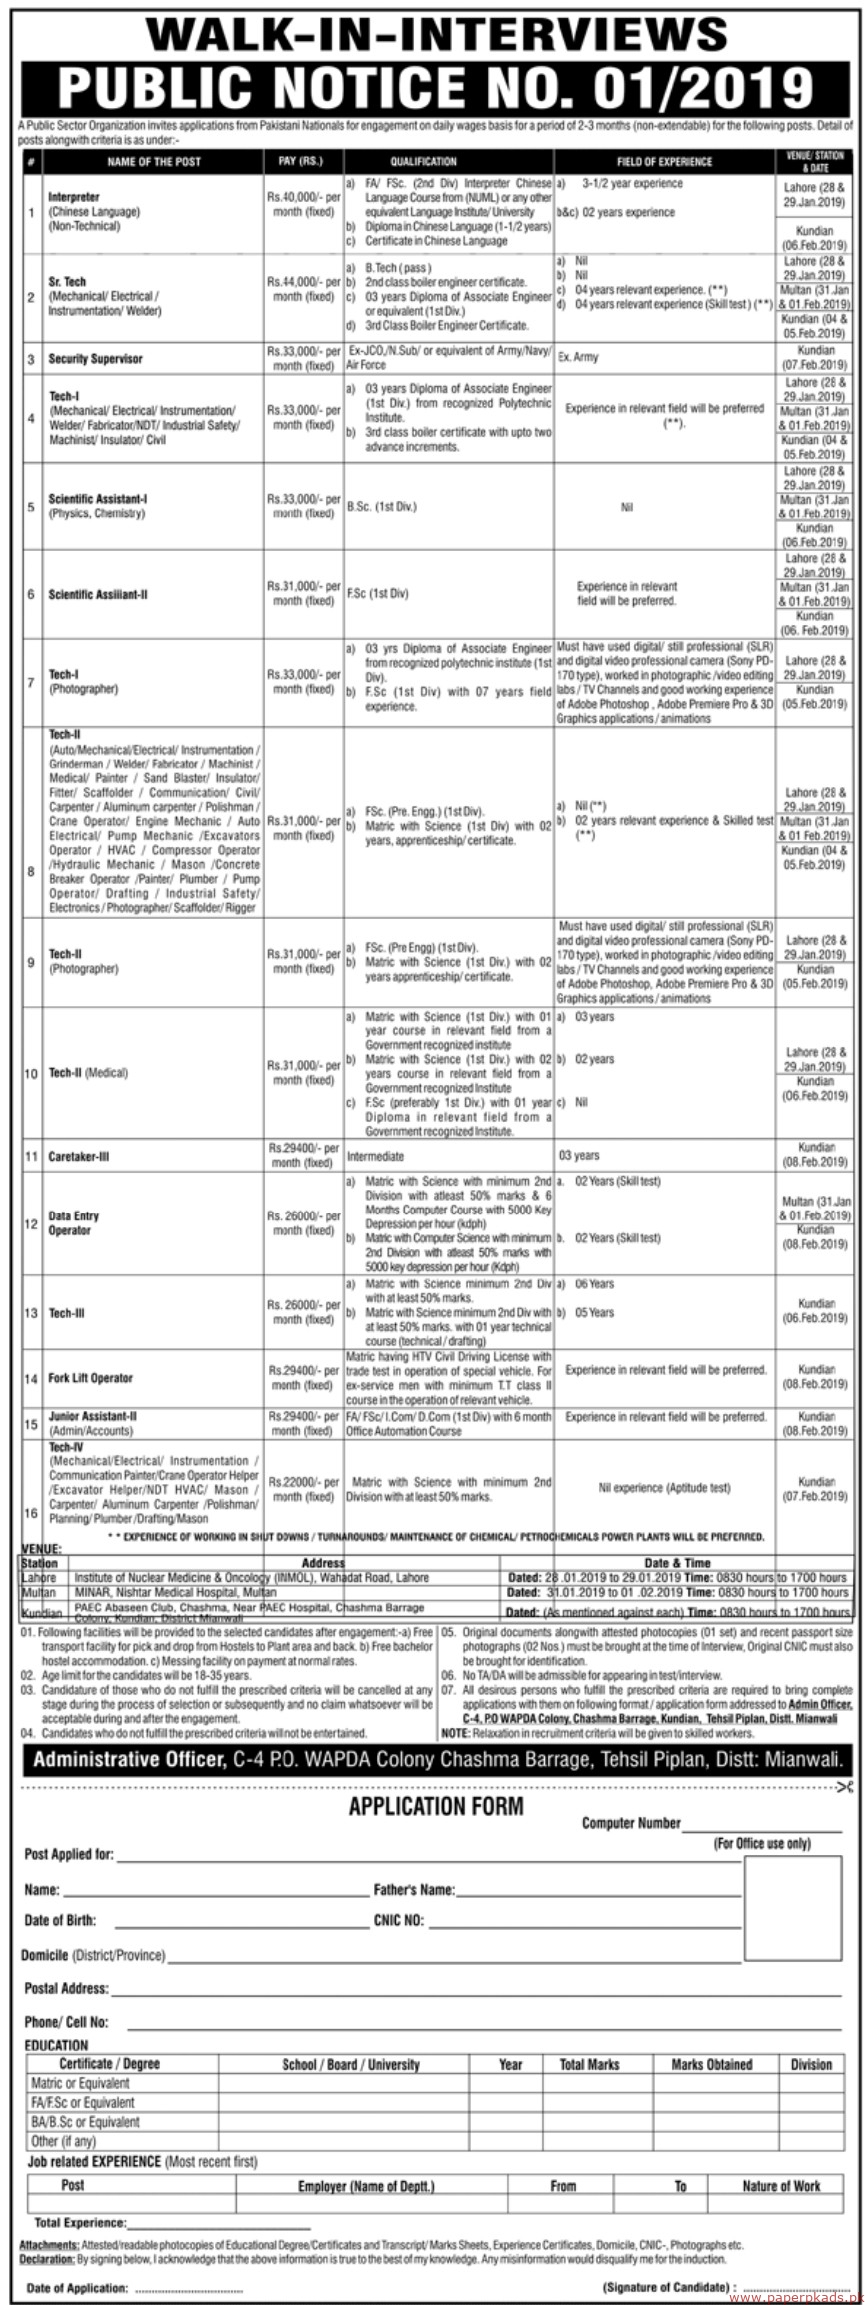 Pakistan Atomic Energy Commission (PAEC) Jobs 2019 Latest